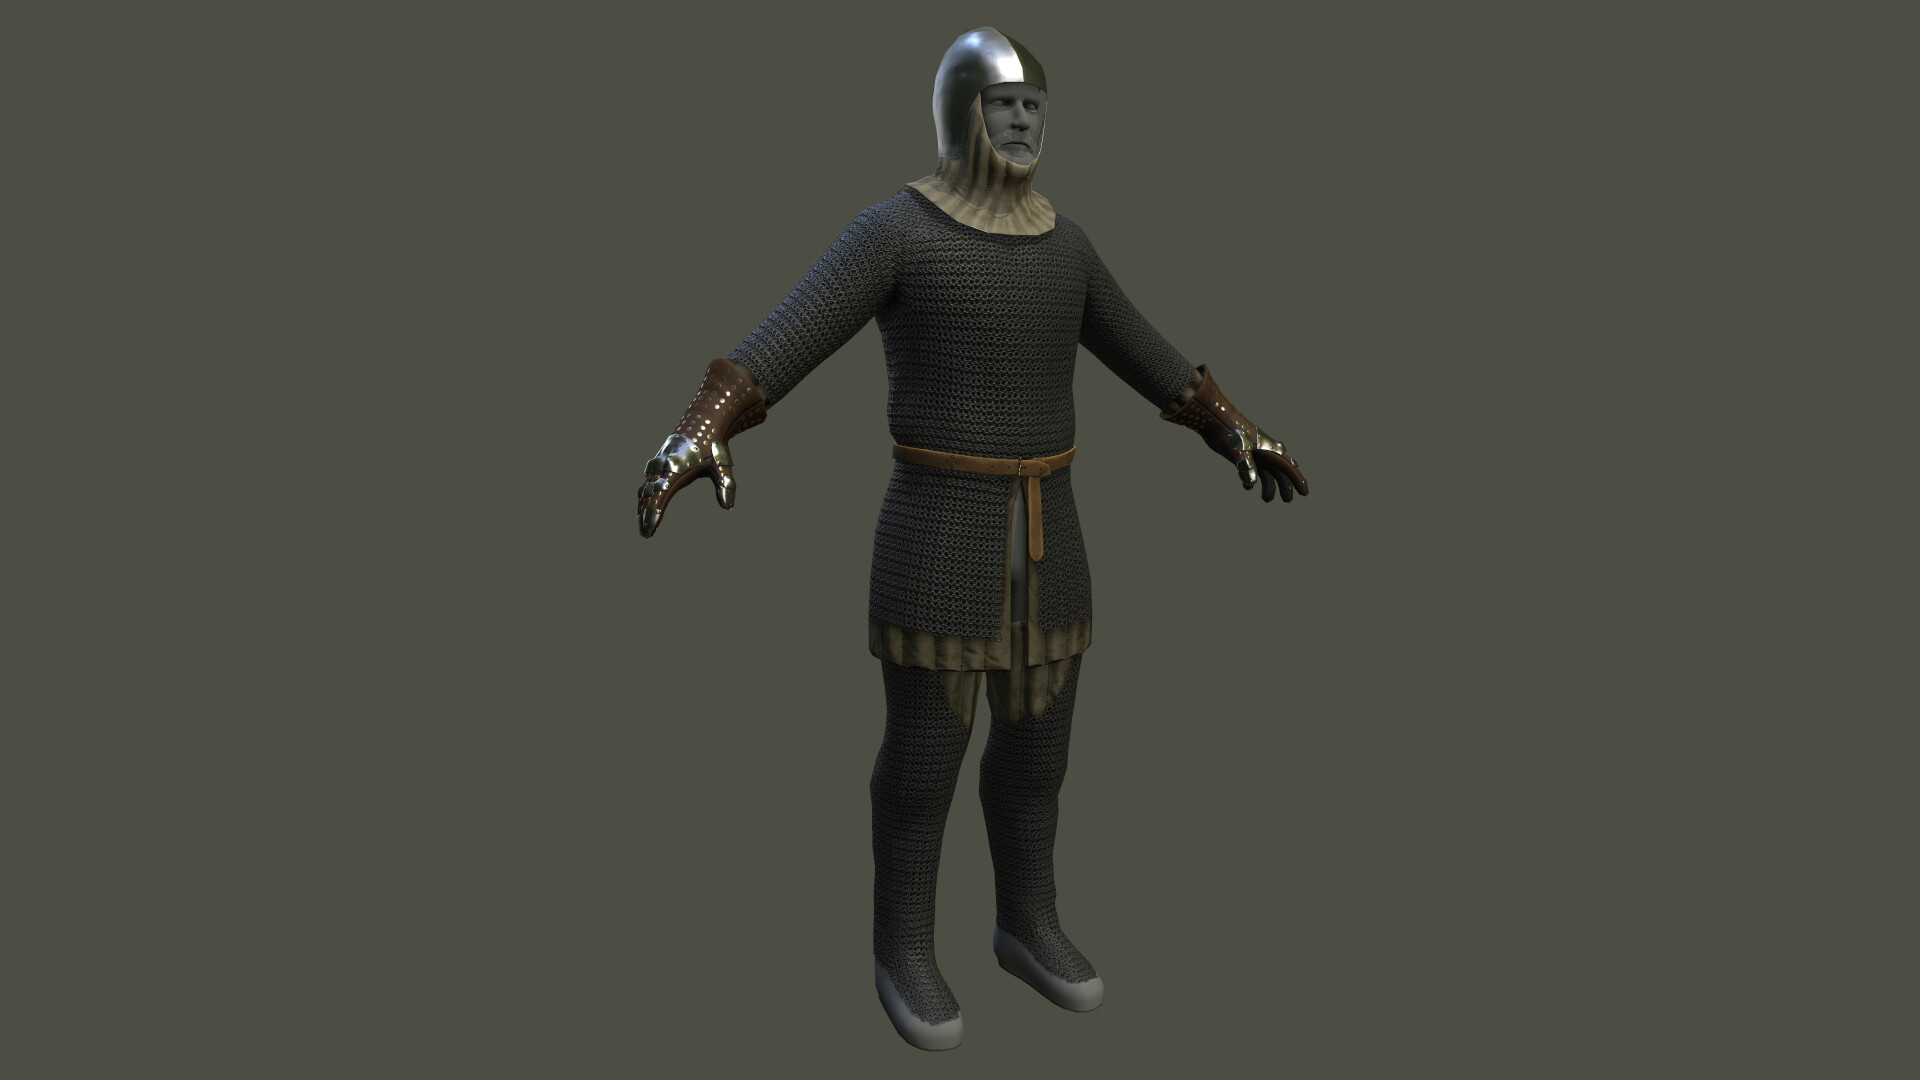 theo escamez - Medieval Armors WORK IN PROGRESS